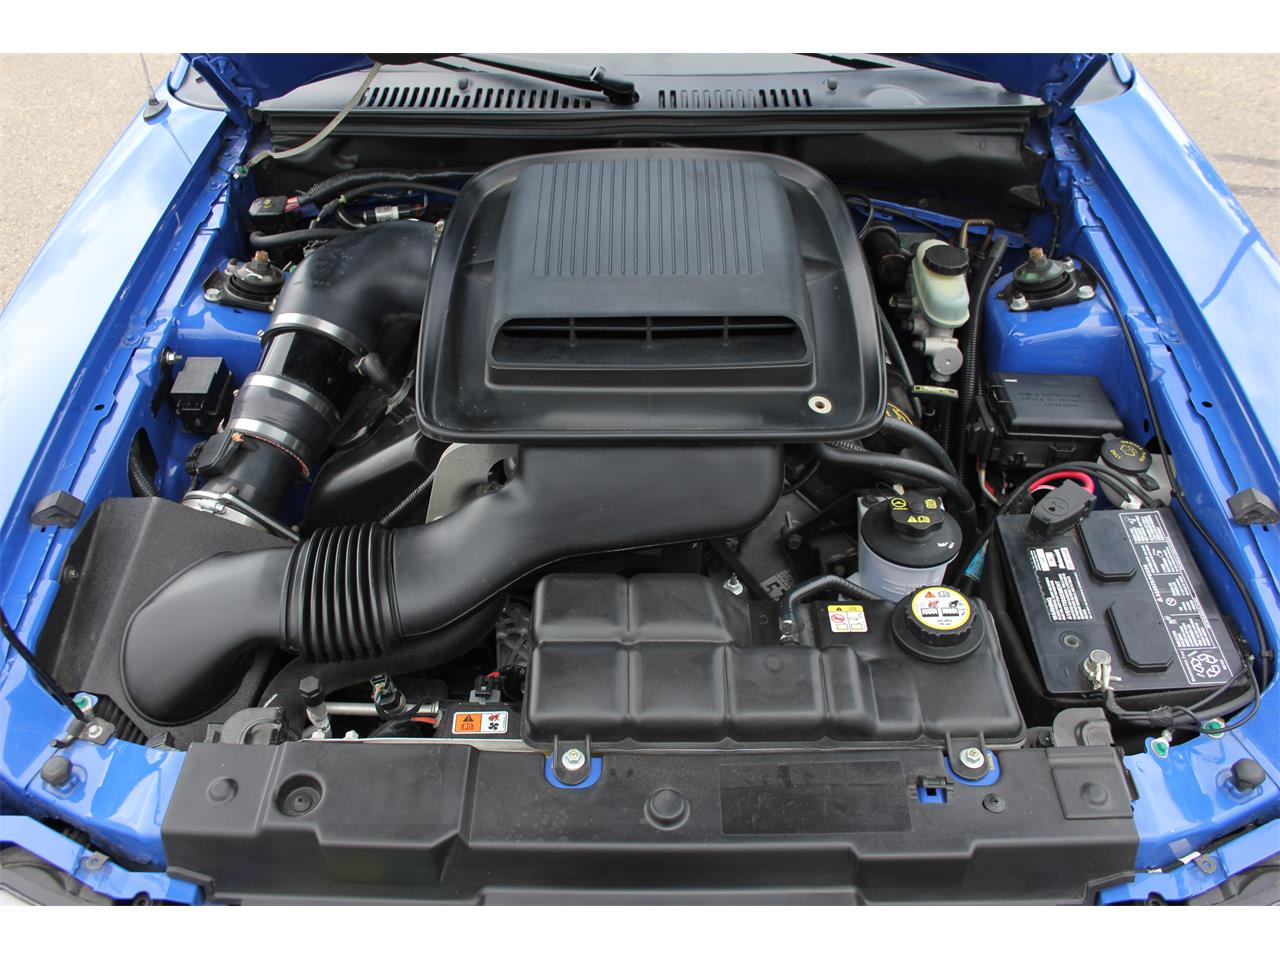 Large Picture of 2003 Ford Mustang Mach 1 located in Sylvan Lake Alberta - $19,900.00 Offered by Adrenalin Motors - LAXP